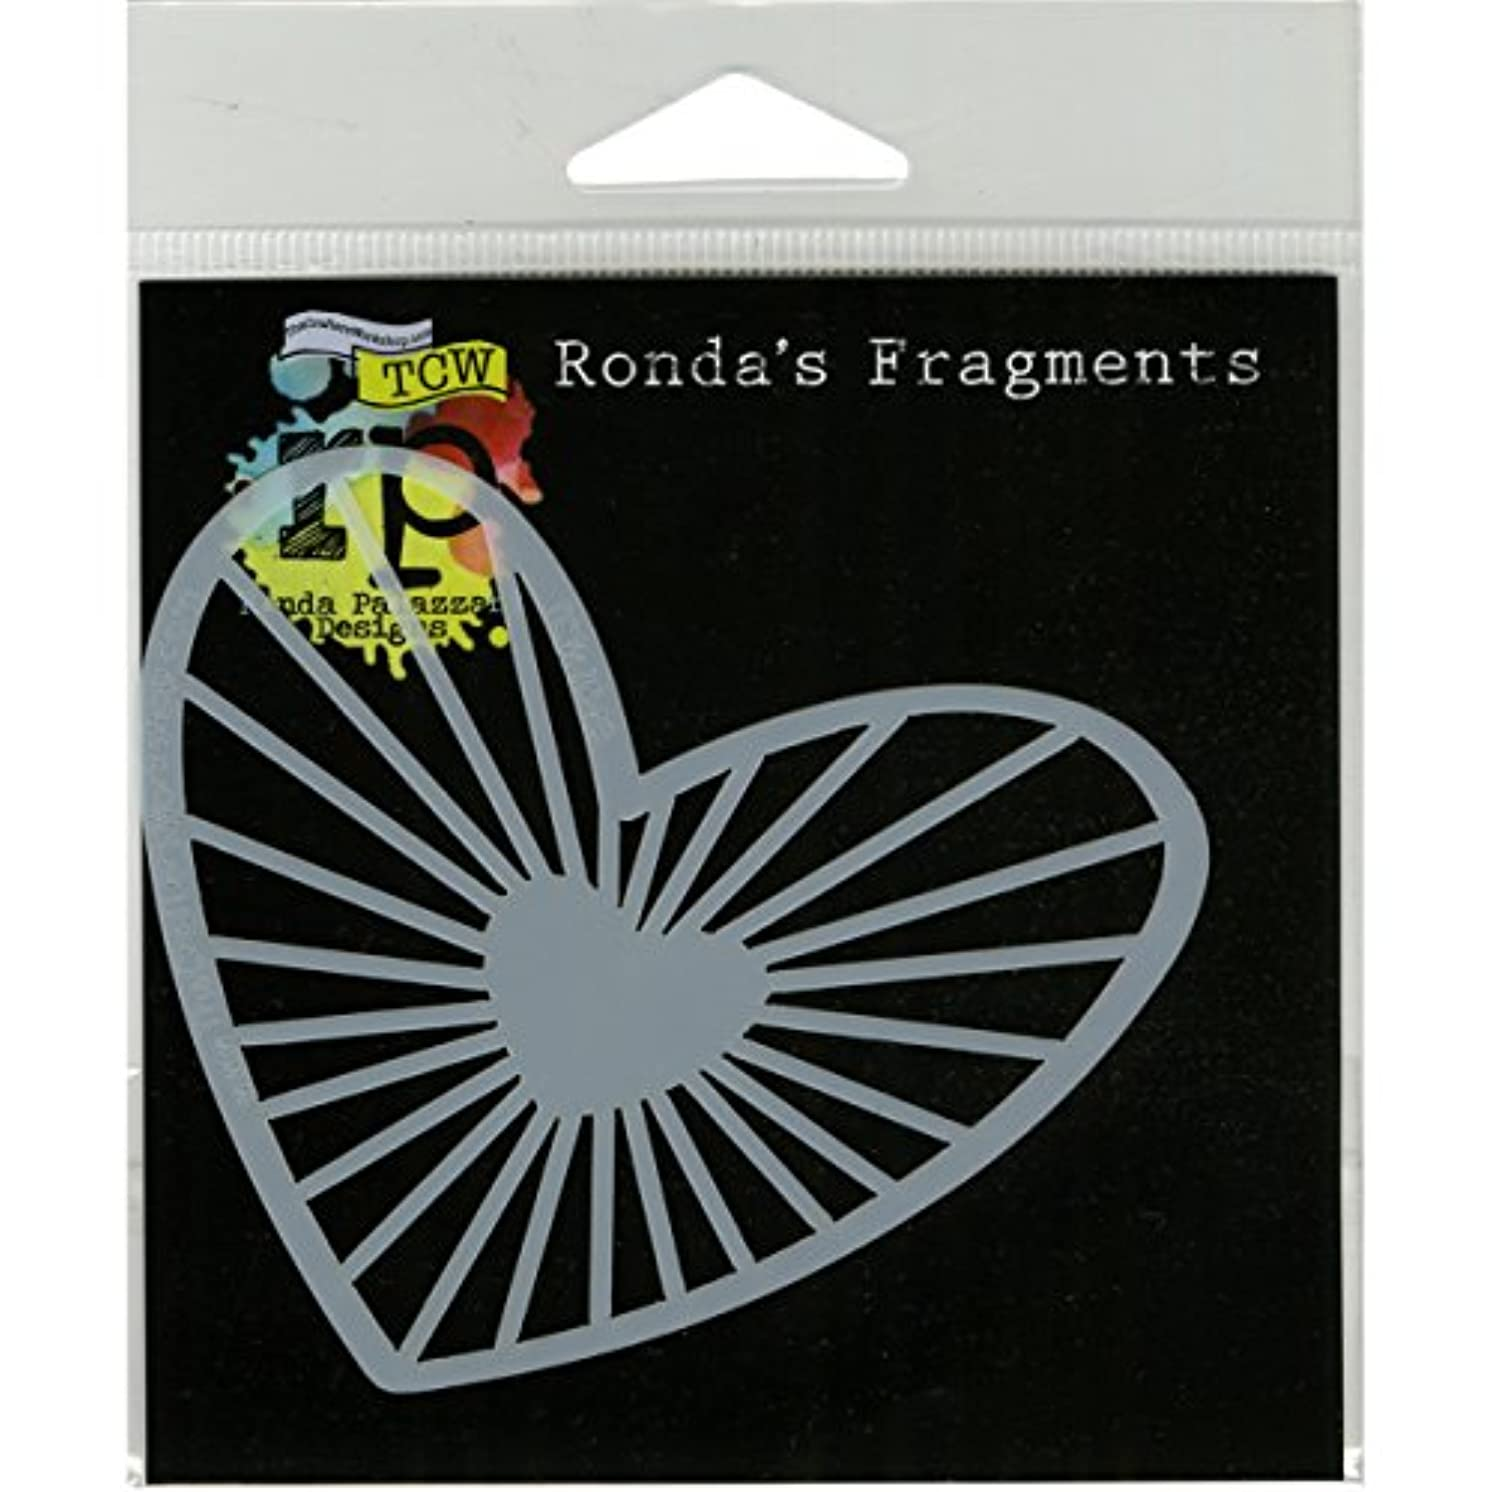 CRAFTERS WORKSHOP Heartstrings Fragments Templates, 4-Inch by 4-Inch